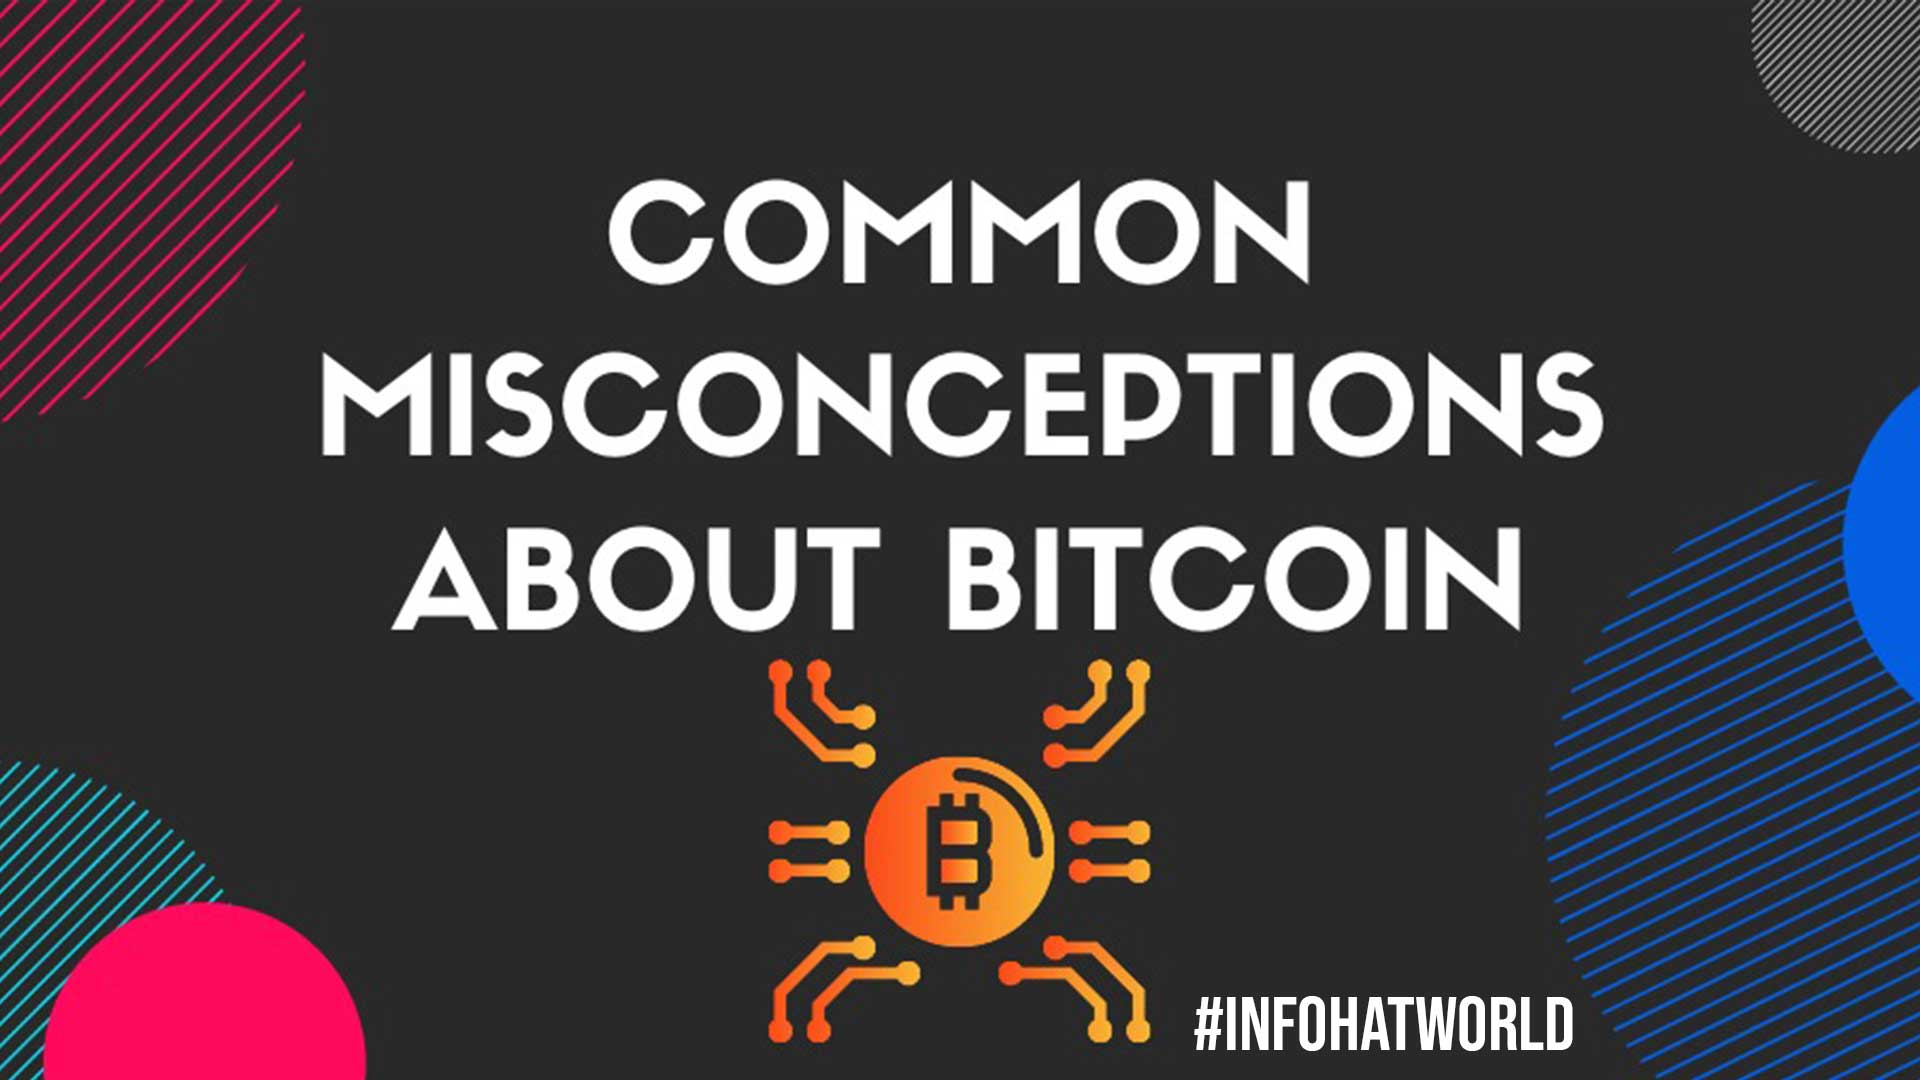 Common Misconceptions About Bitcoins